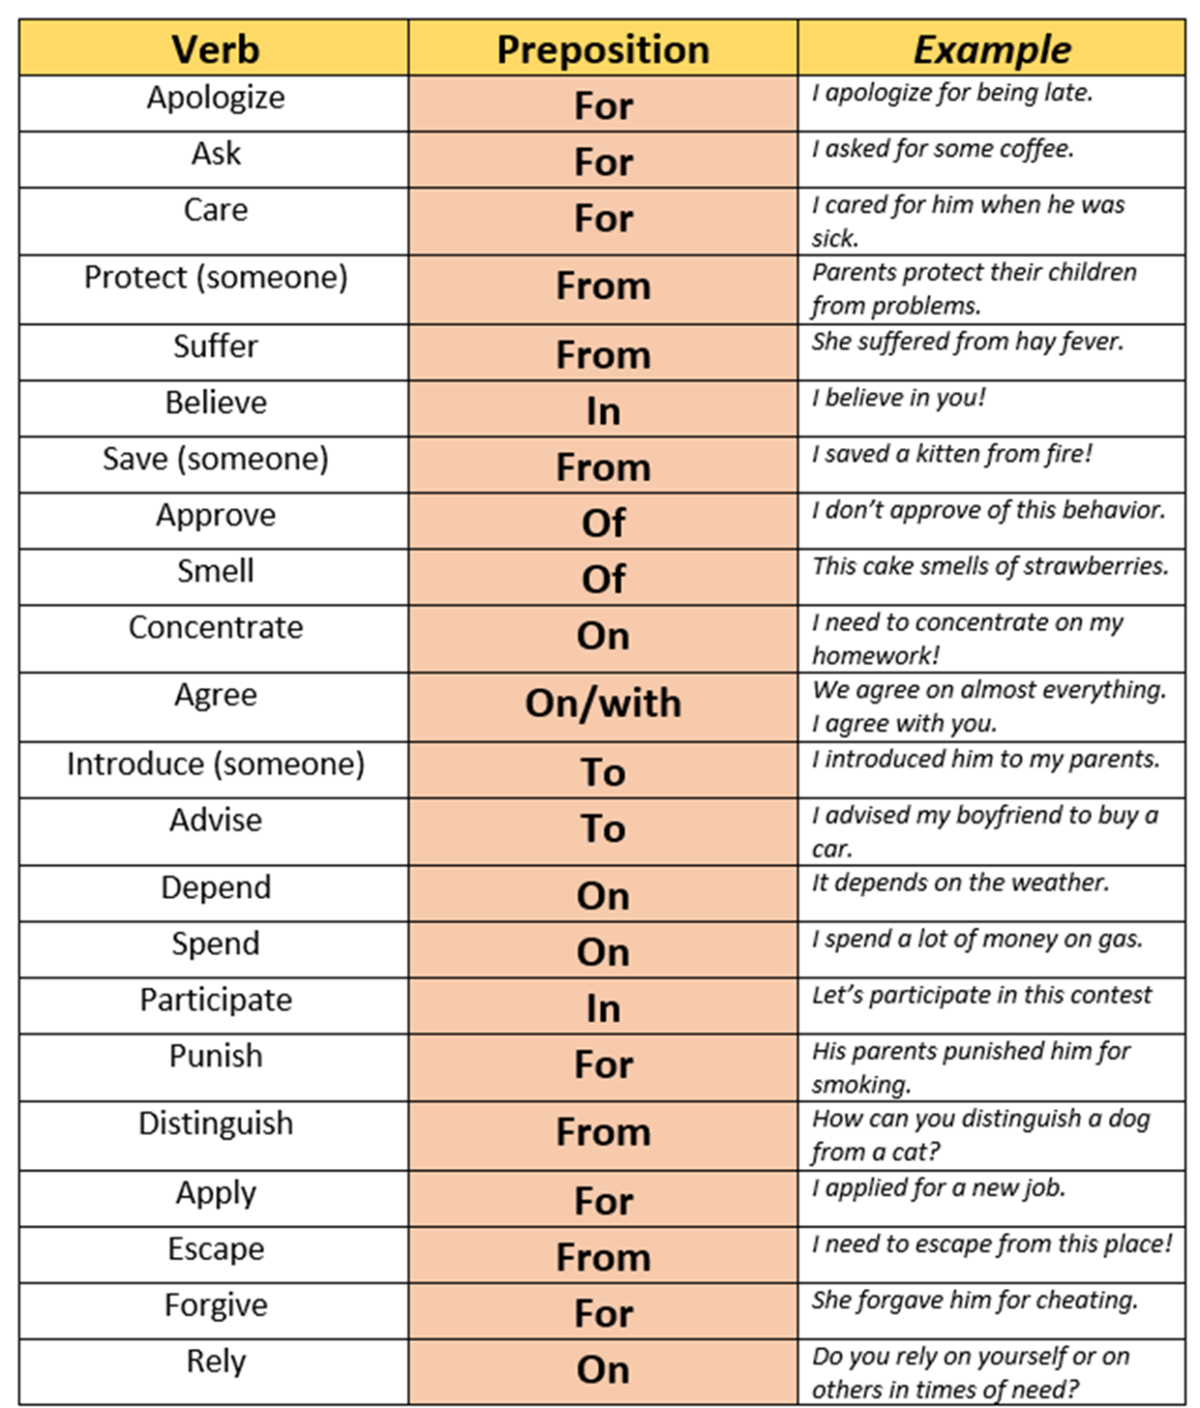 Verbs Followed By Prepositions Some Verbs Are Usually Followed By Prepositions Before The Object Of The Verb Gram Learn English Prepositions English Grammar [ 1408 x 1200 Pixel ]